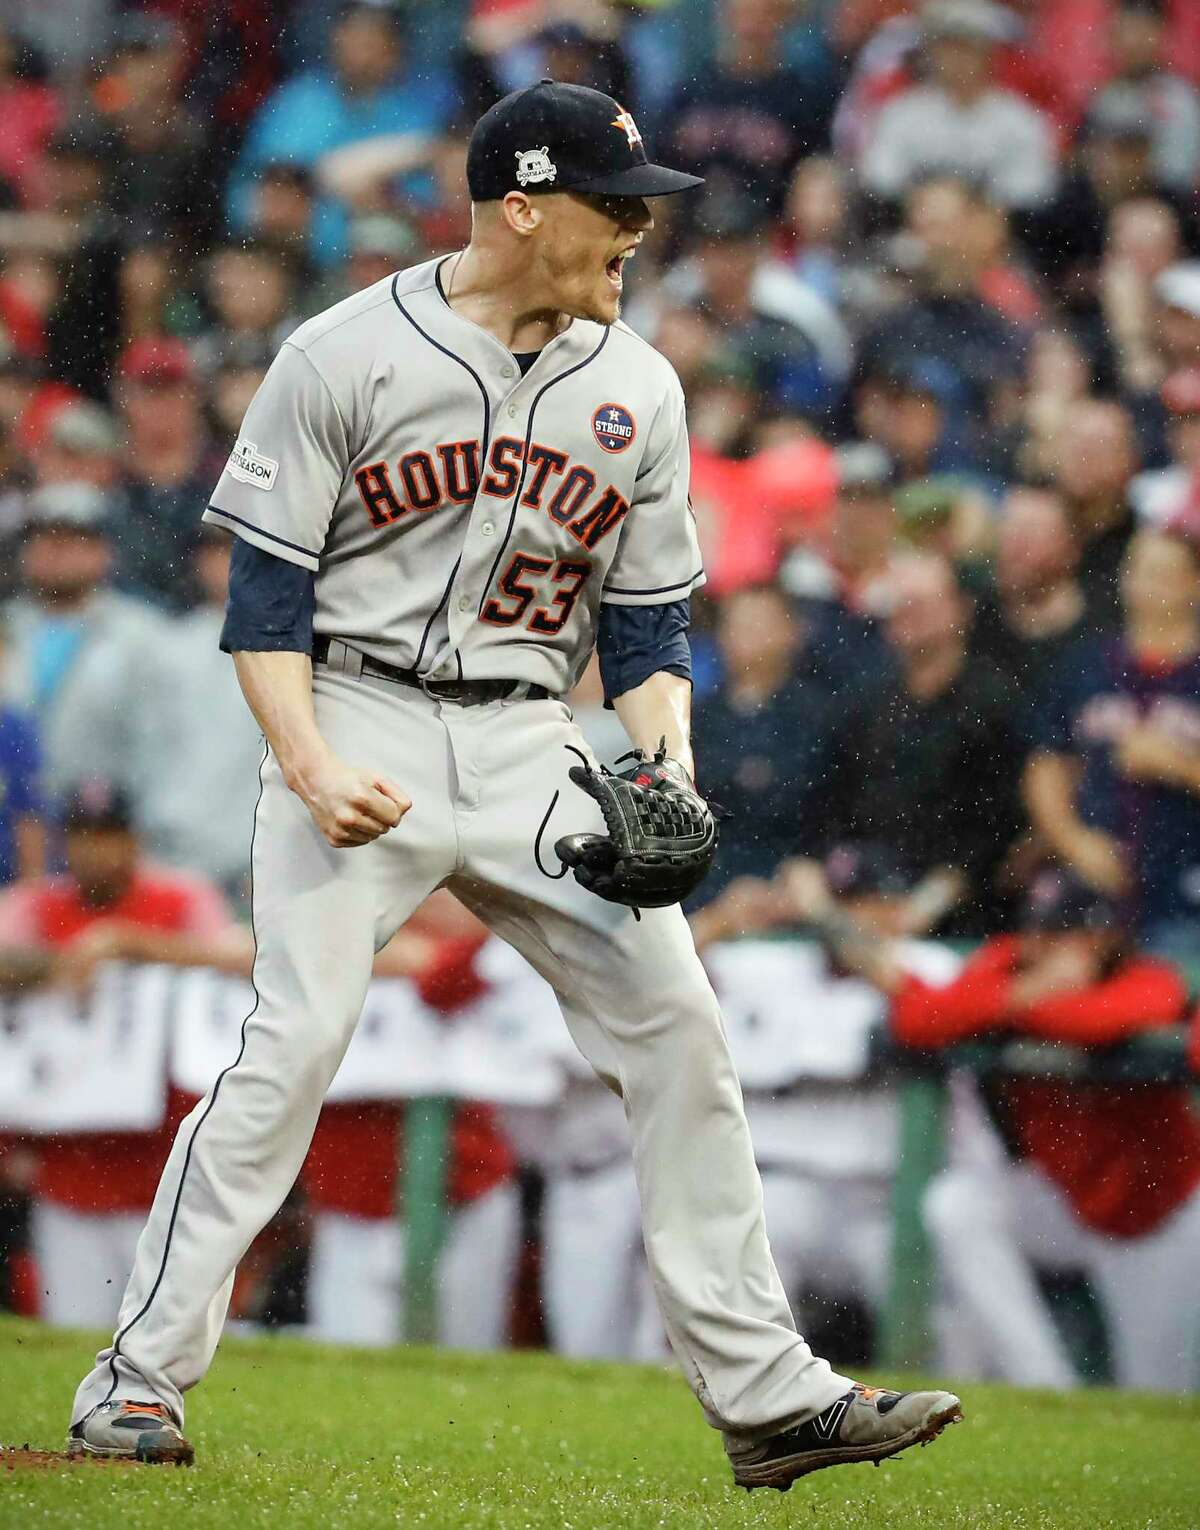 Houston Astros:They will be playing the New York Yankees in the ALCS Game 1 and 2 on Friday Oct. 13 at 7 p.m., and on Saturday at 3 p.m. at Minute Maid Park. More Details: www.mlb.com/astros